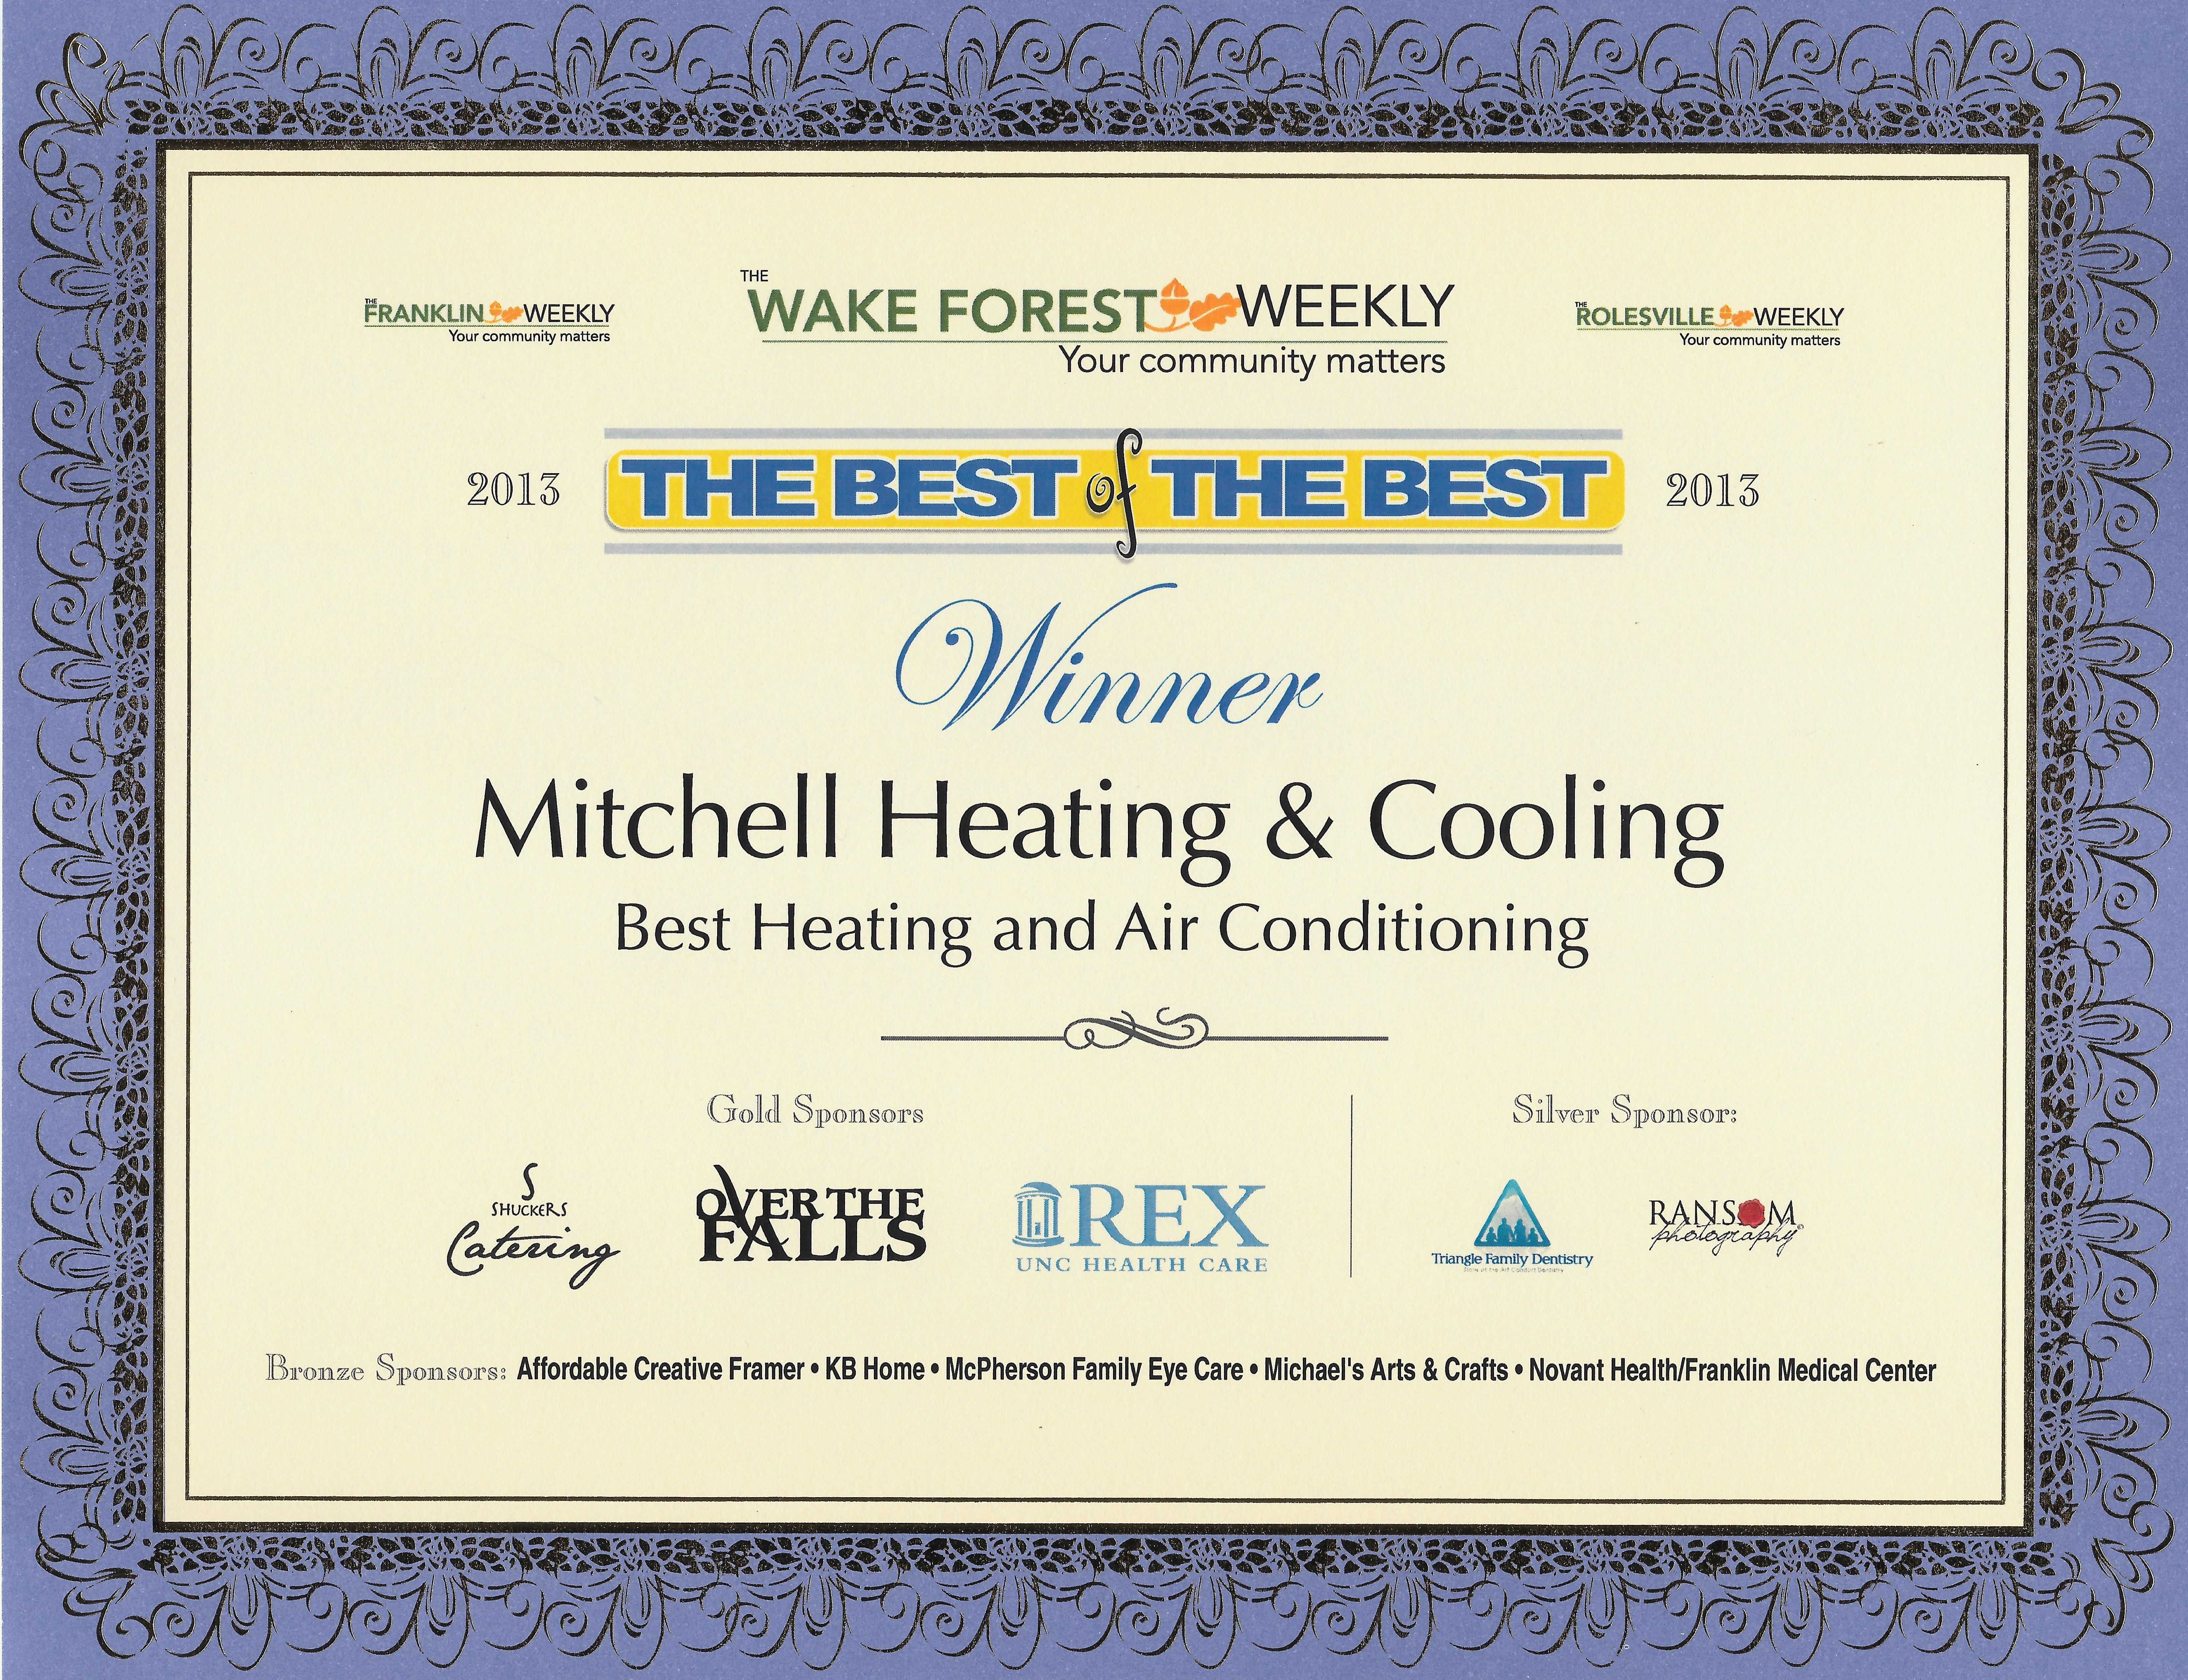 For The Second Year In A Row Mitchell Heating Cooling Has Been